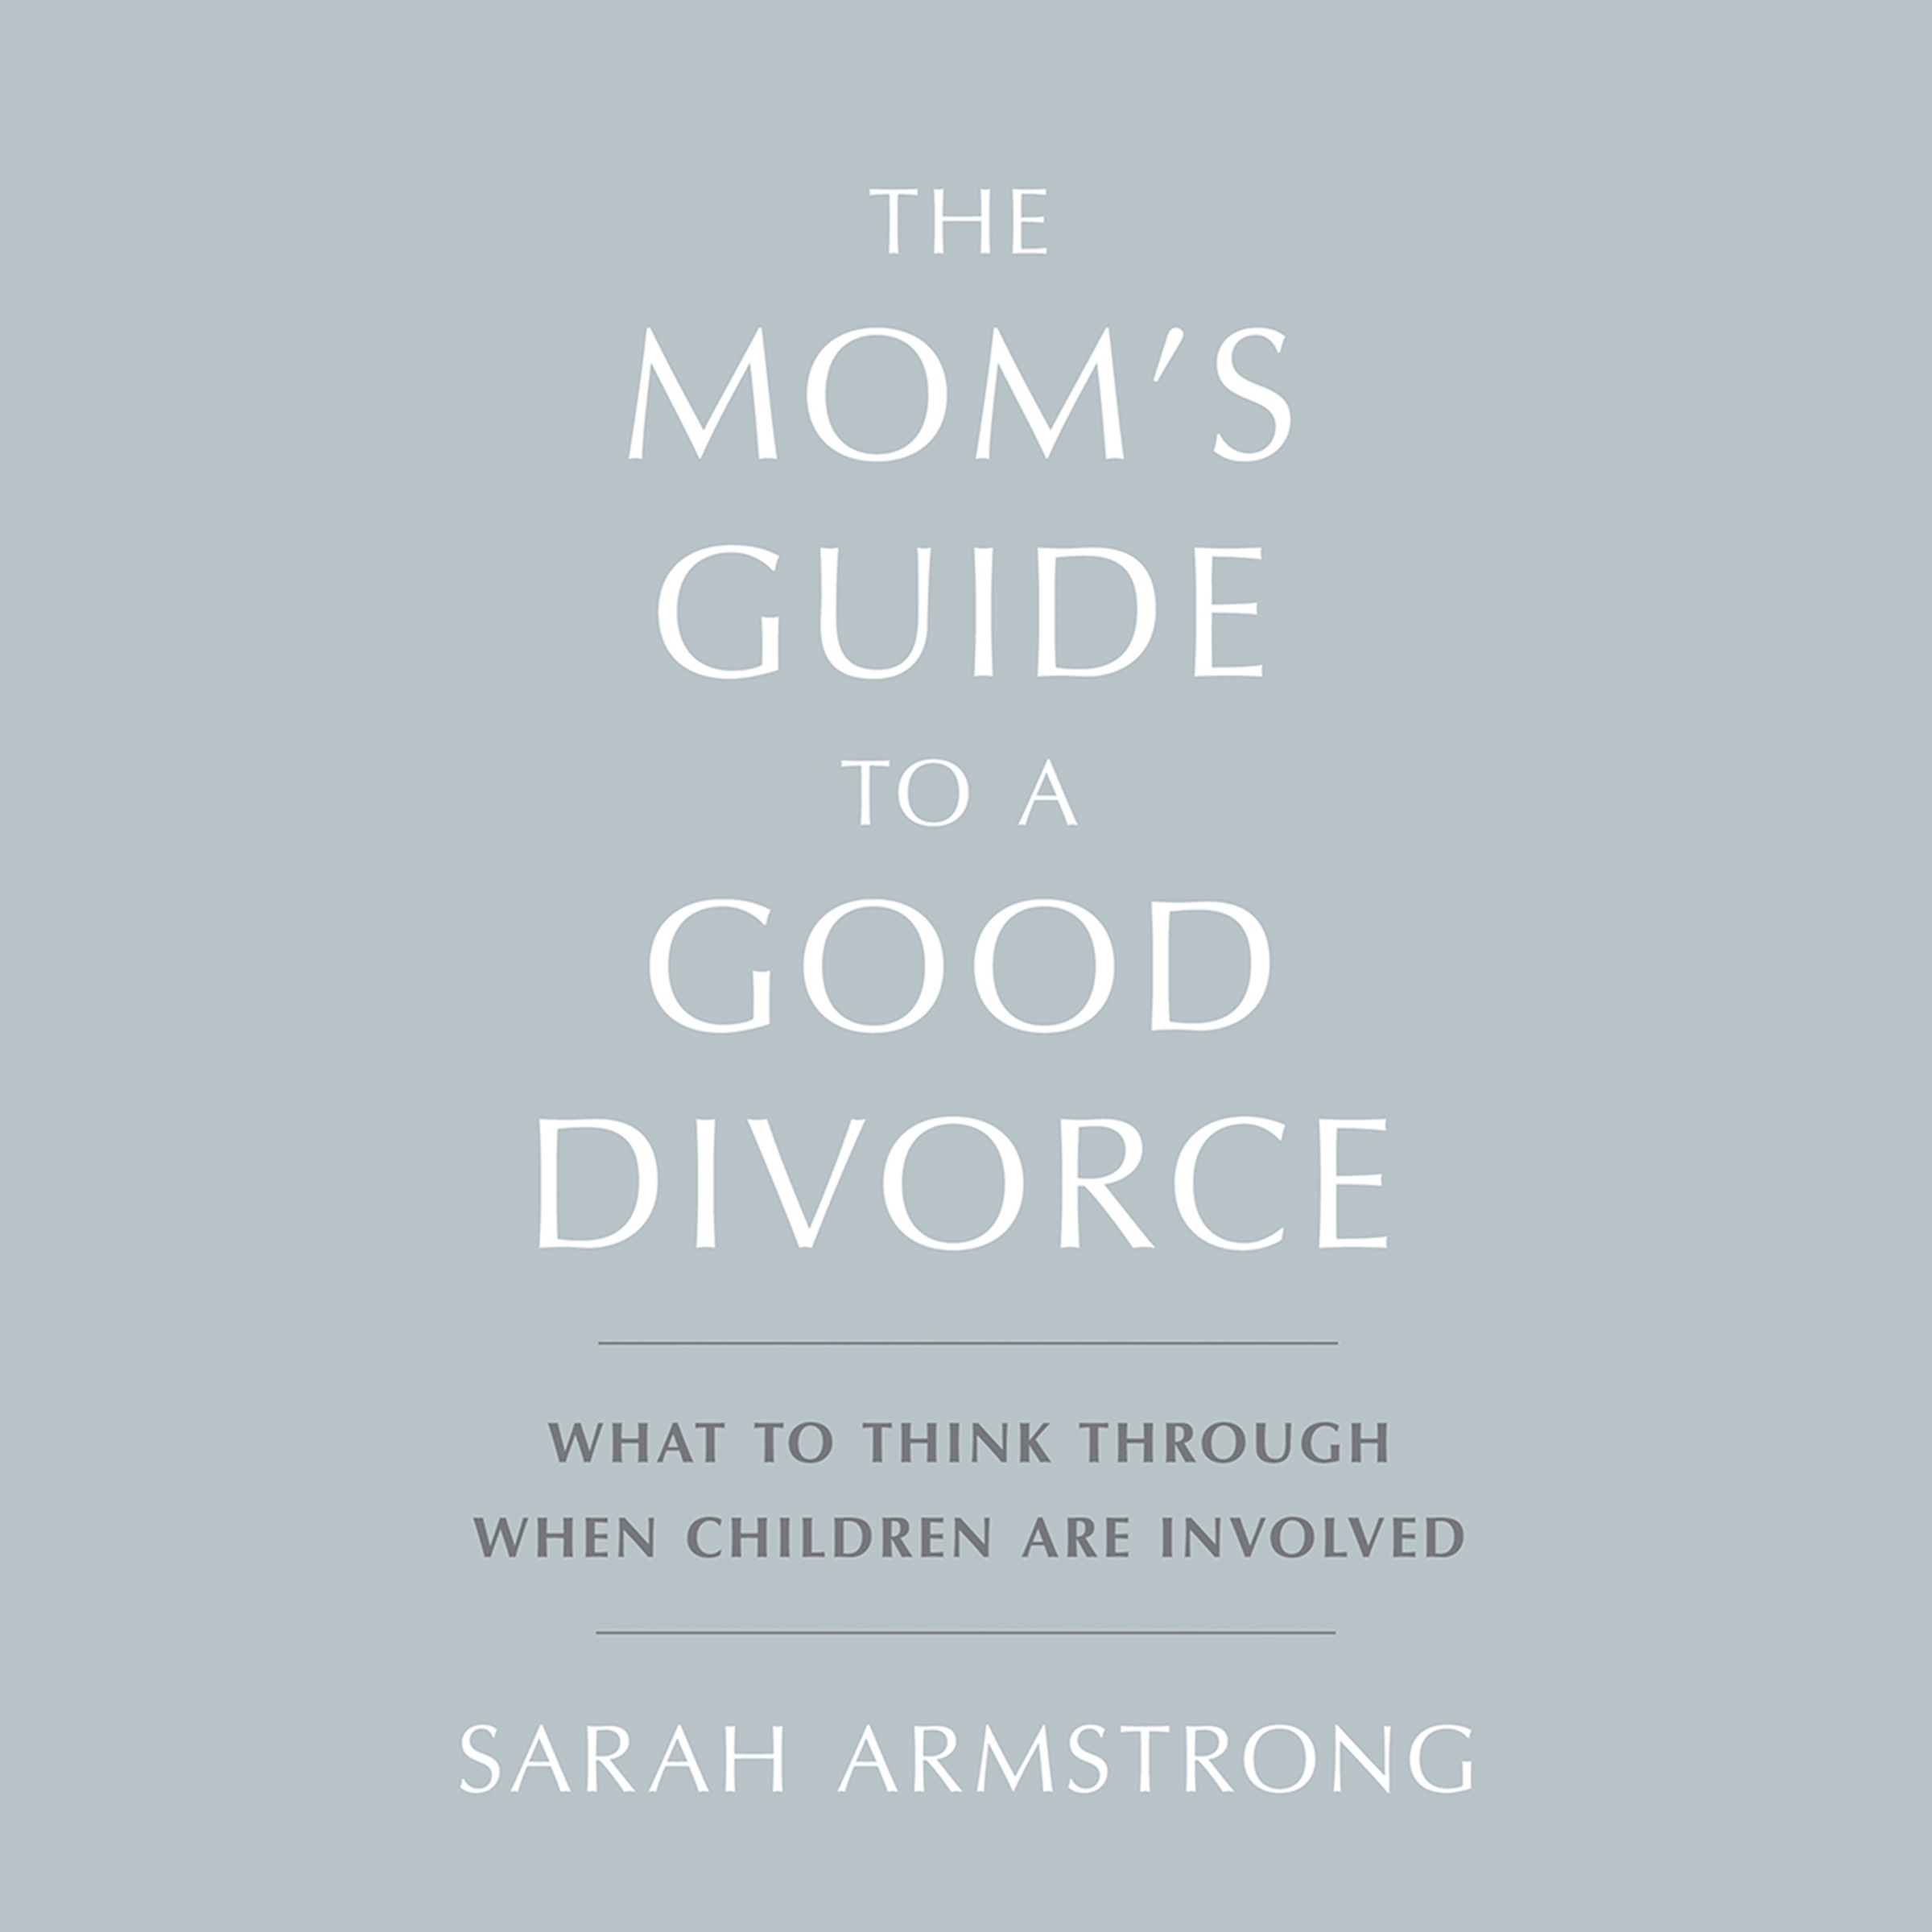 The Mom's Guide to a Good Divorce cover image